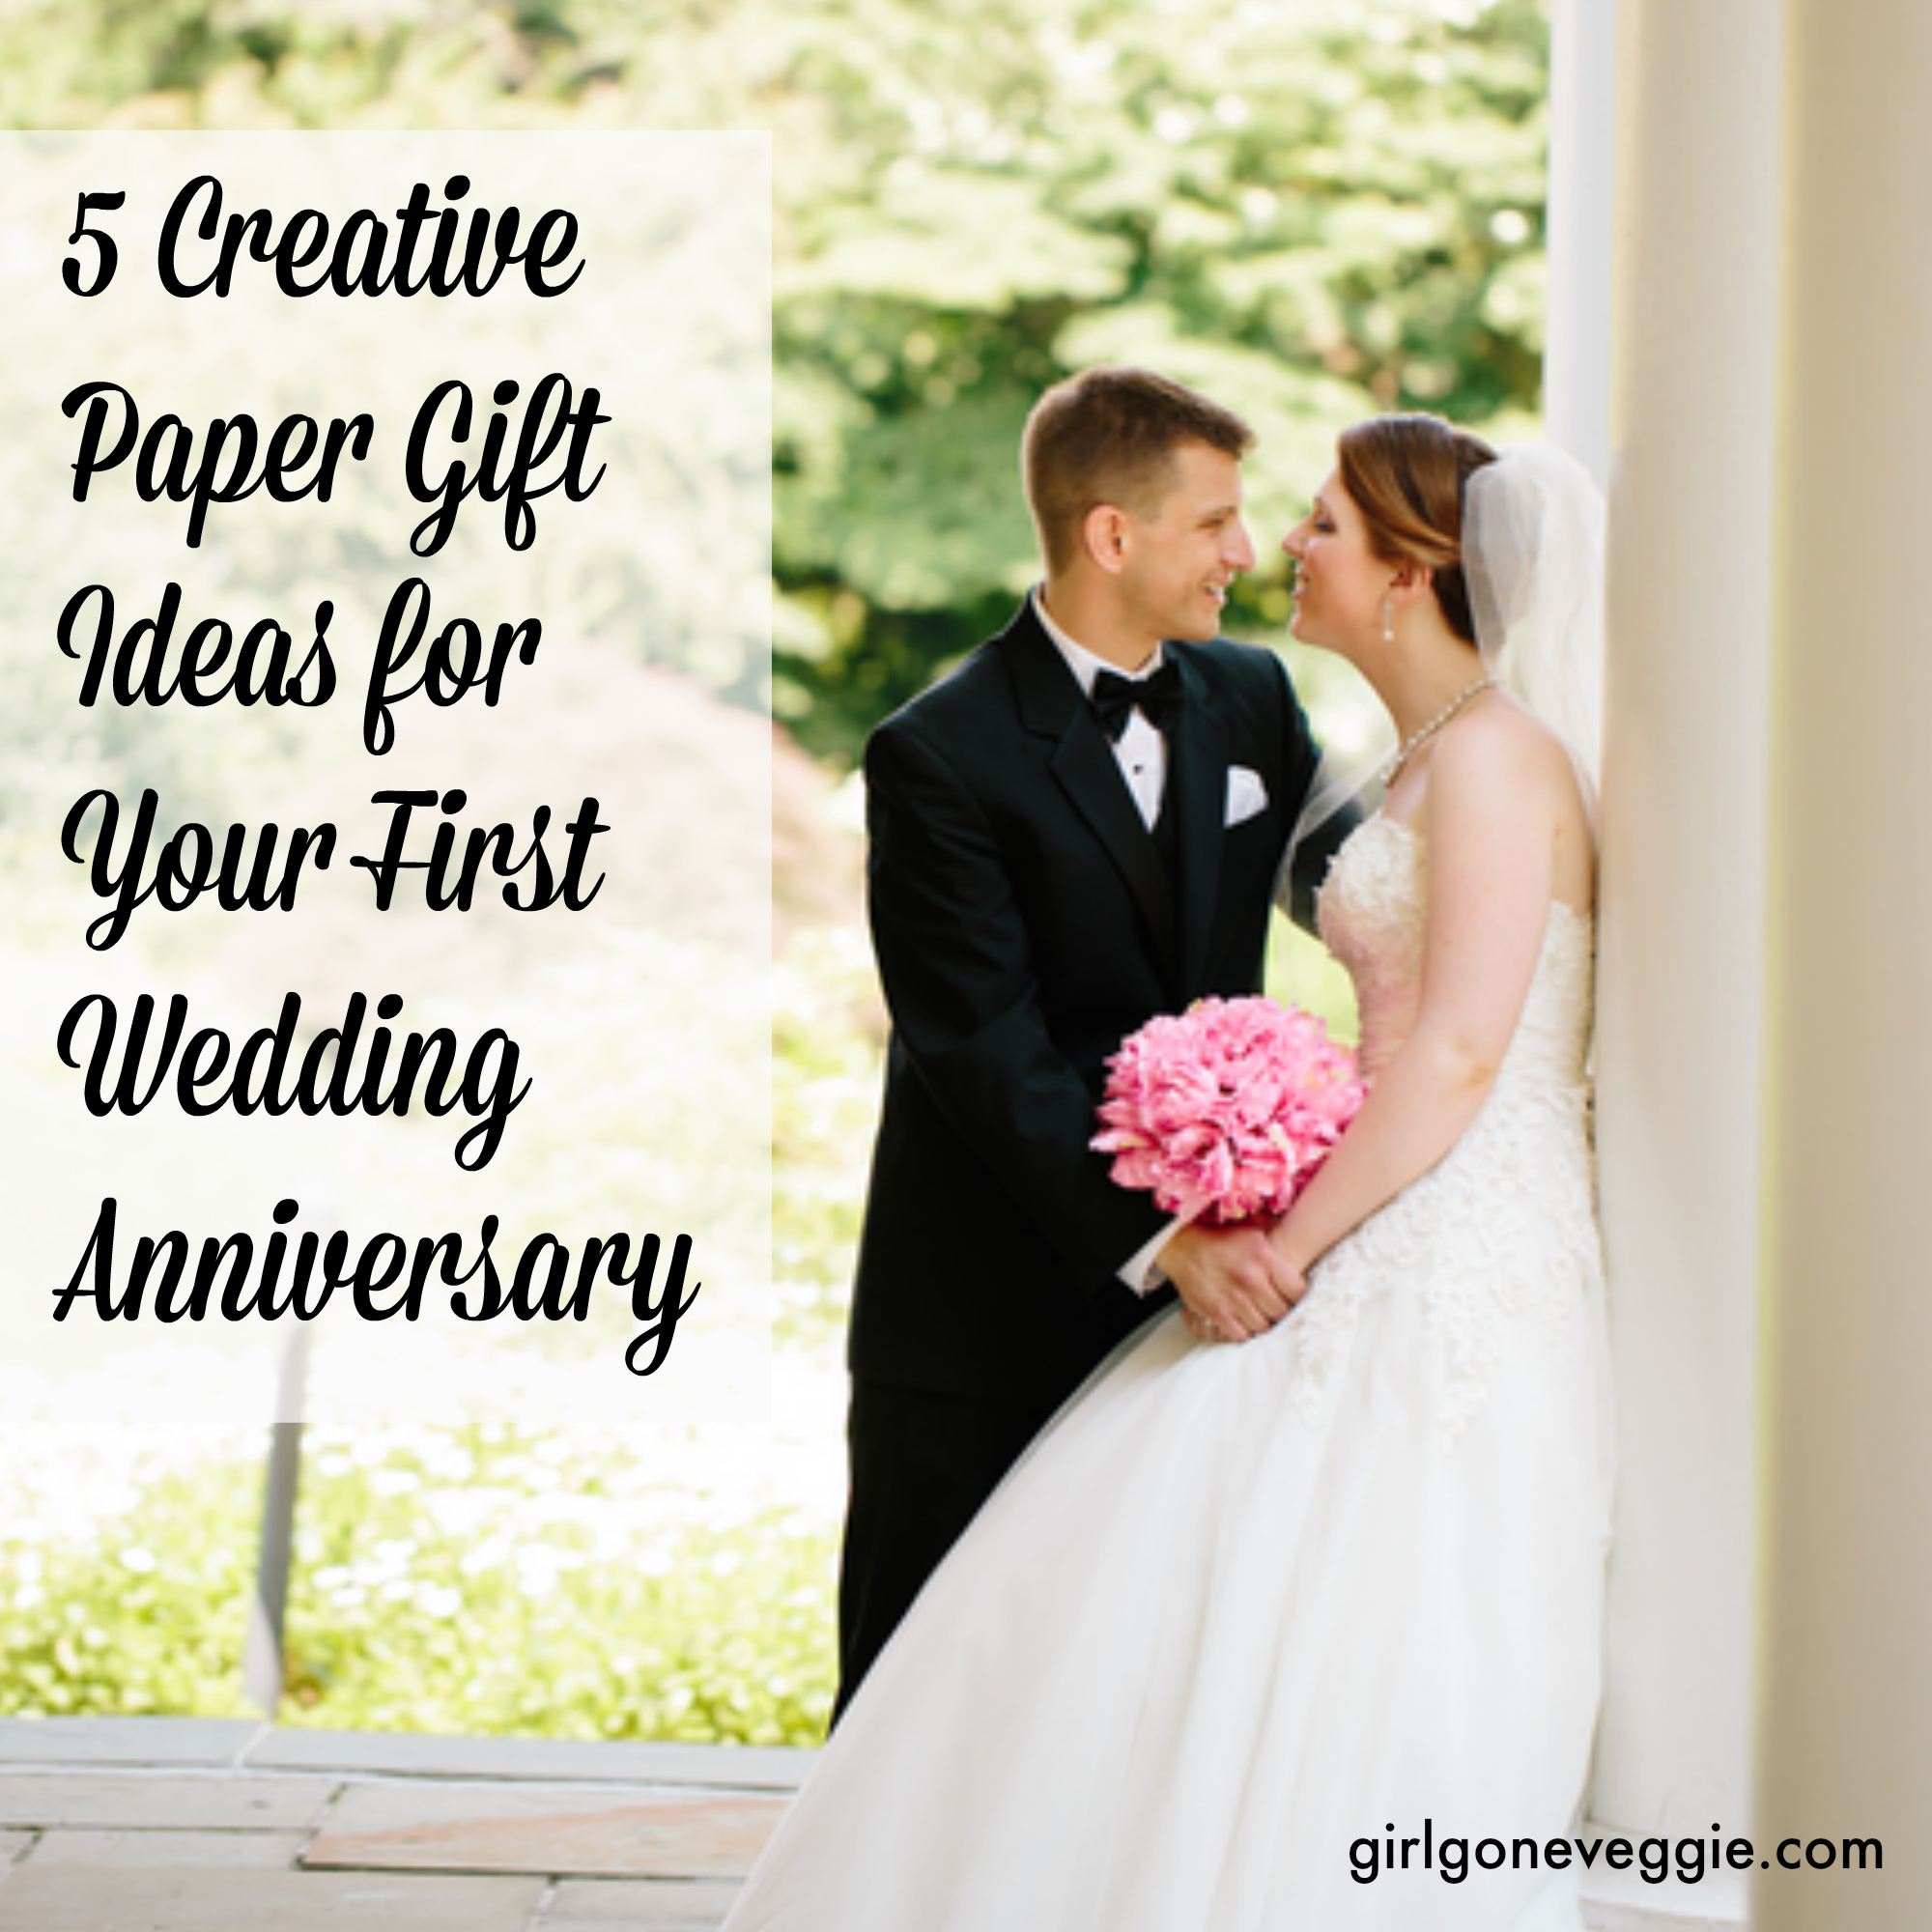 Gift Of Wedding Anniversary: 5 Creative Paper Gift Ideas For Your 1st Wedding Anniversary